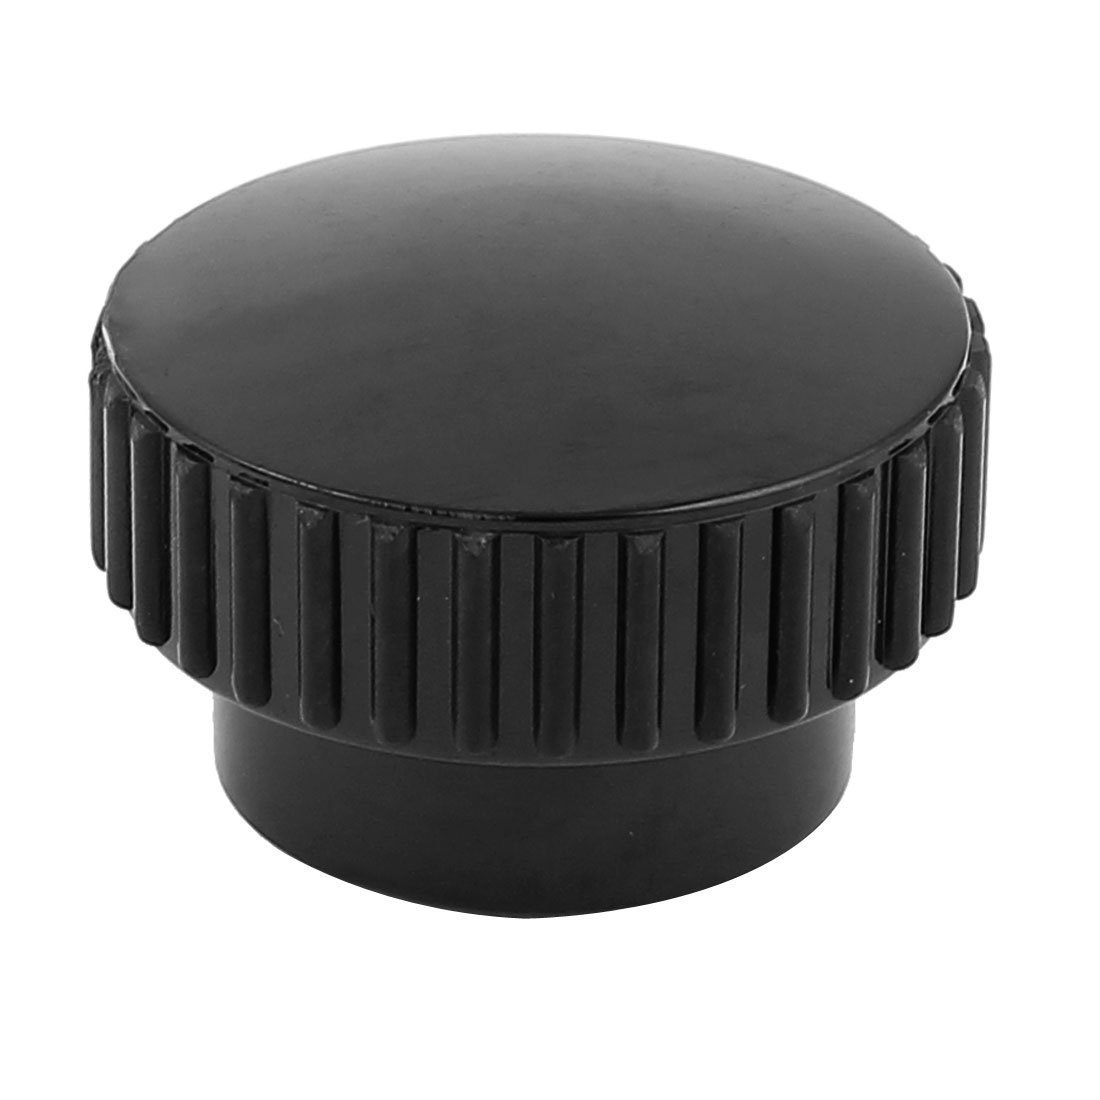 M10 x 40mm Round Head Screw On Knurled Clamping Knob Black